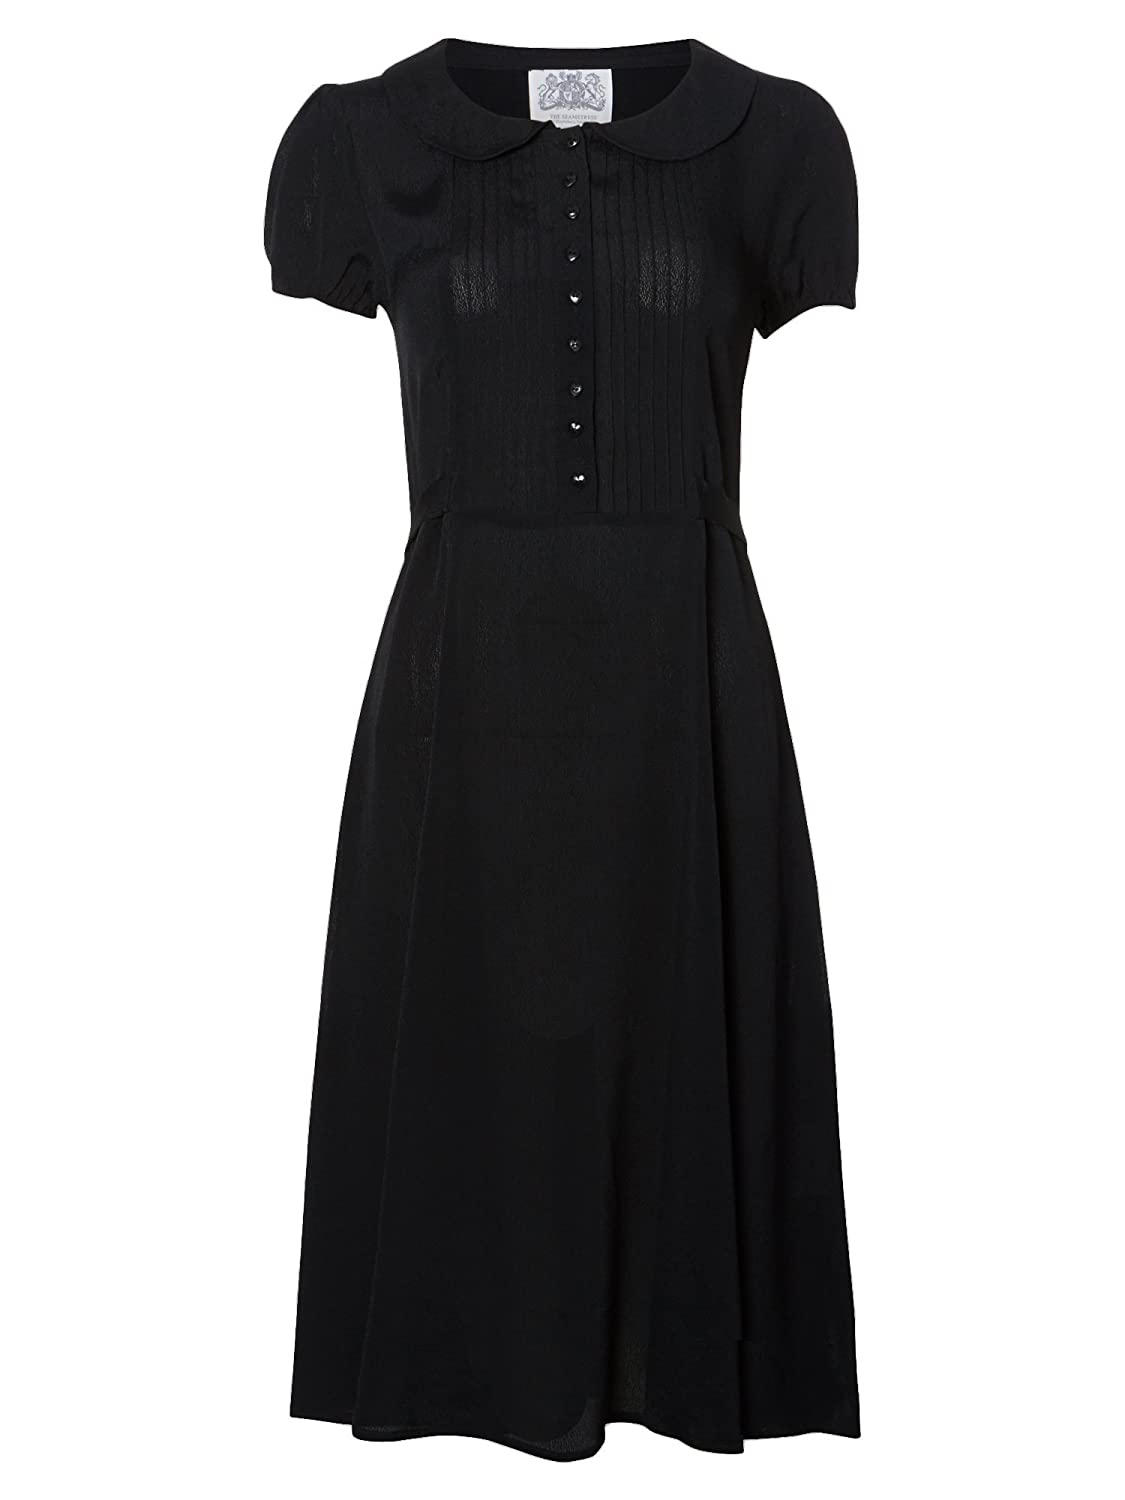 Swing Dance Clothing You Can Dance In 1940s Authentic Vintage Inspired Dorothy Dress in Black £79.00 AT vintagedancer.com